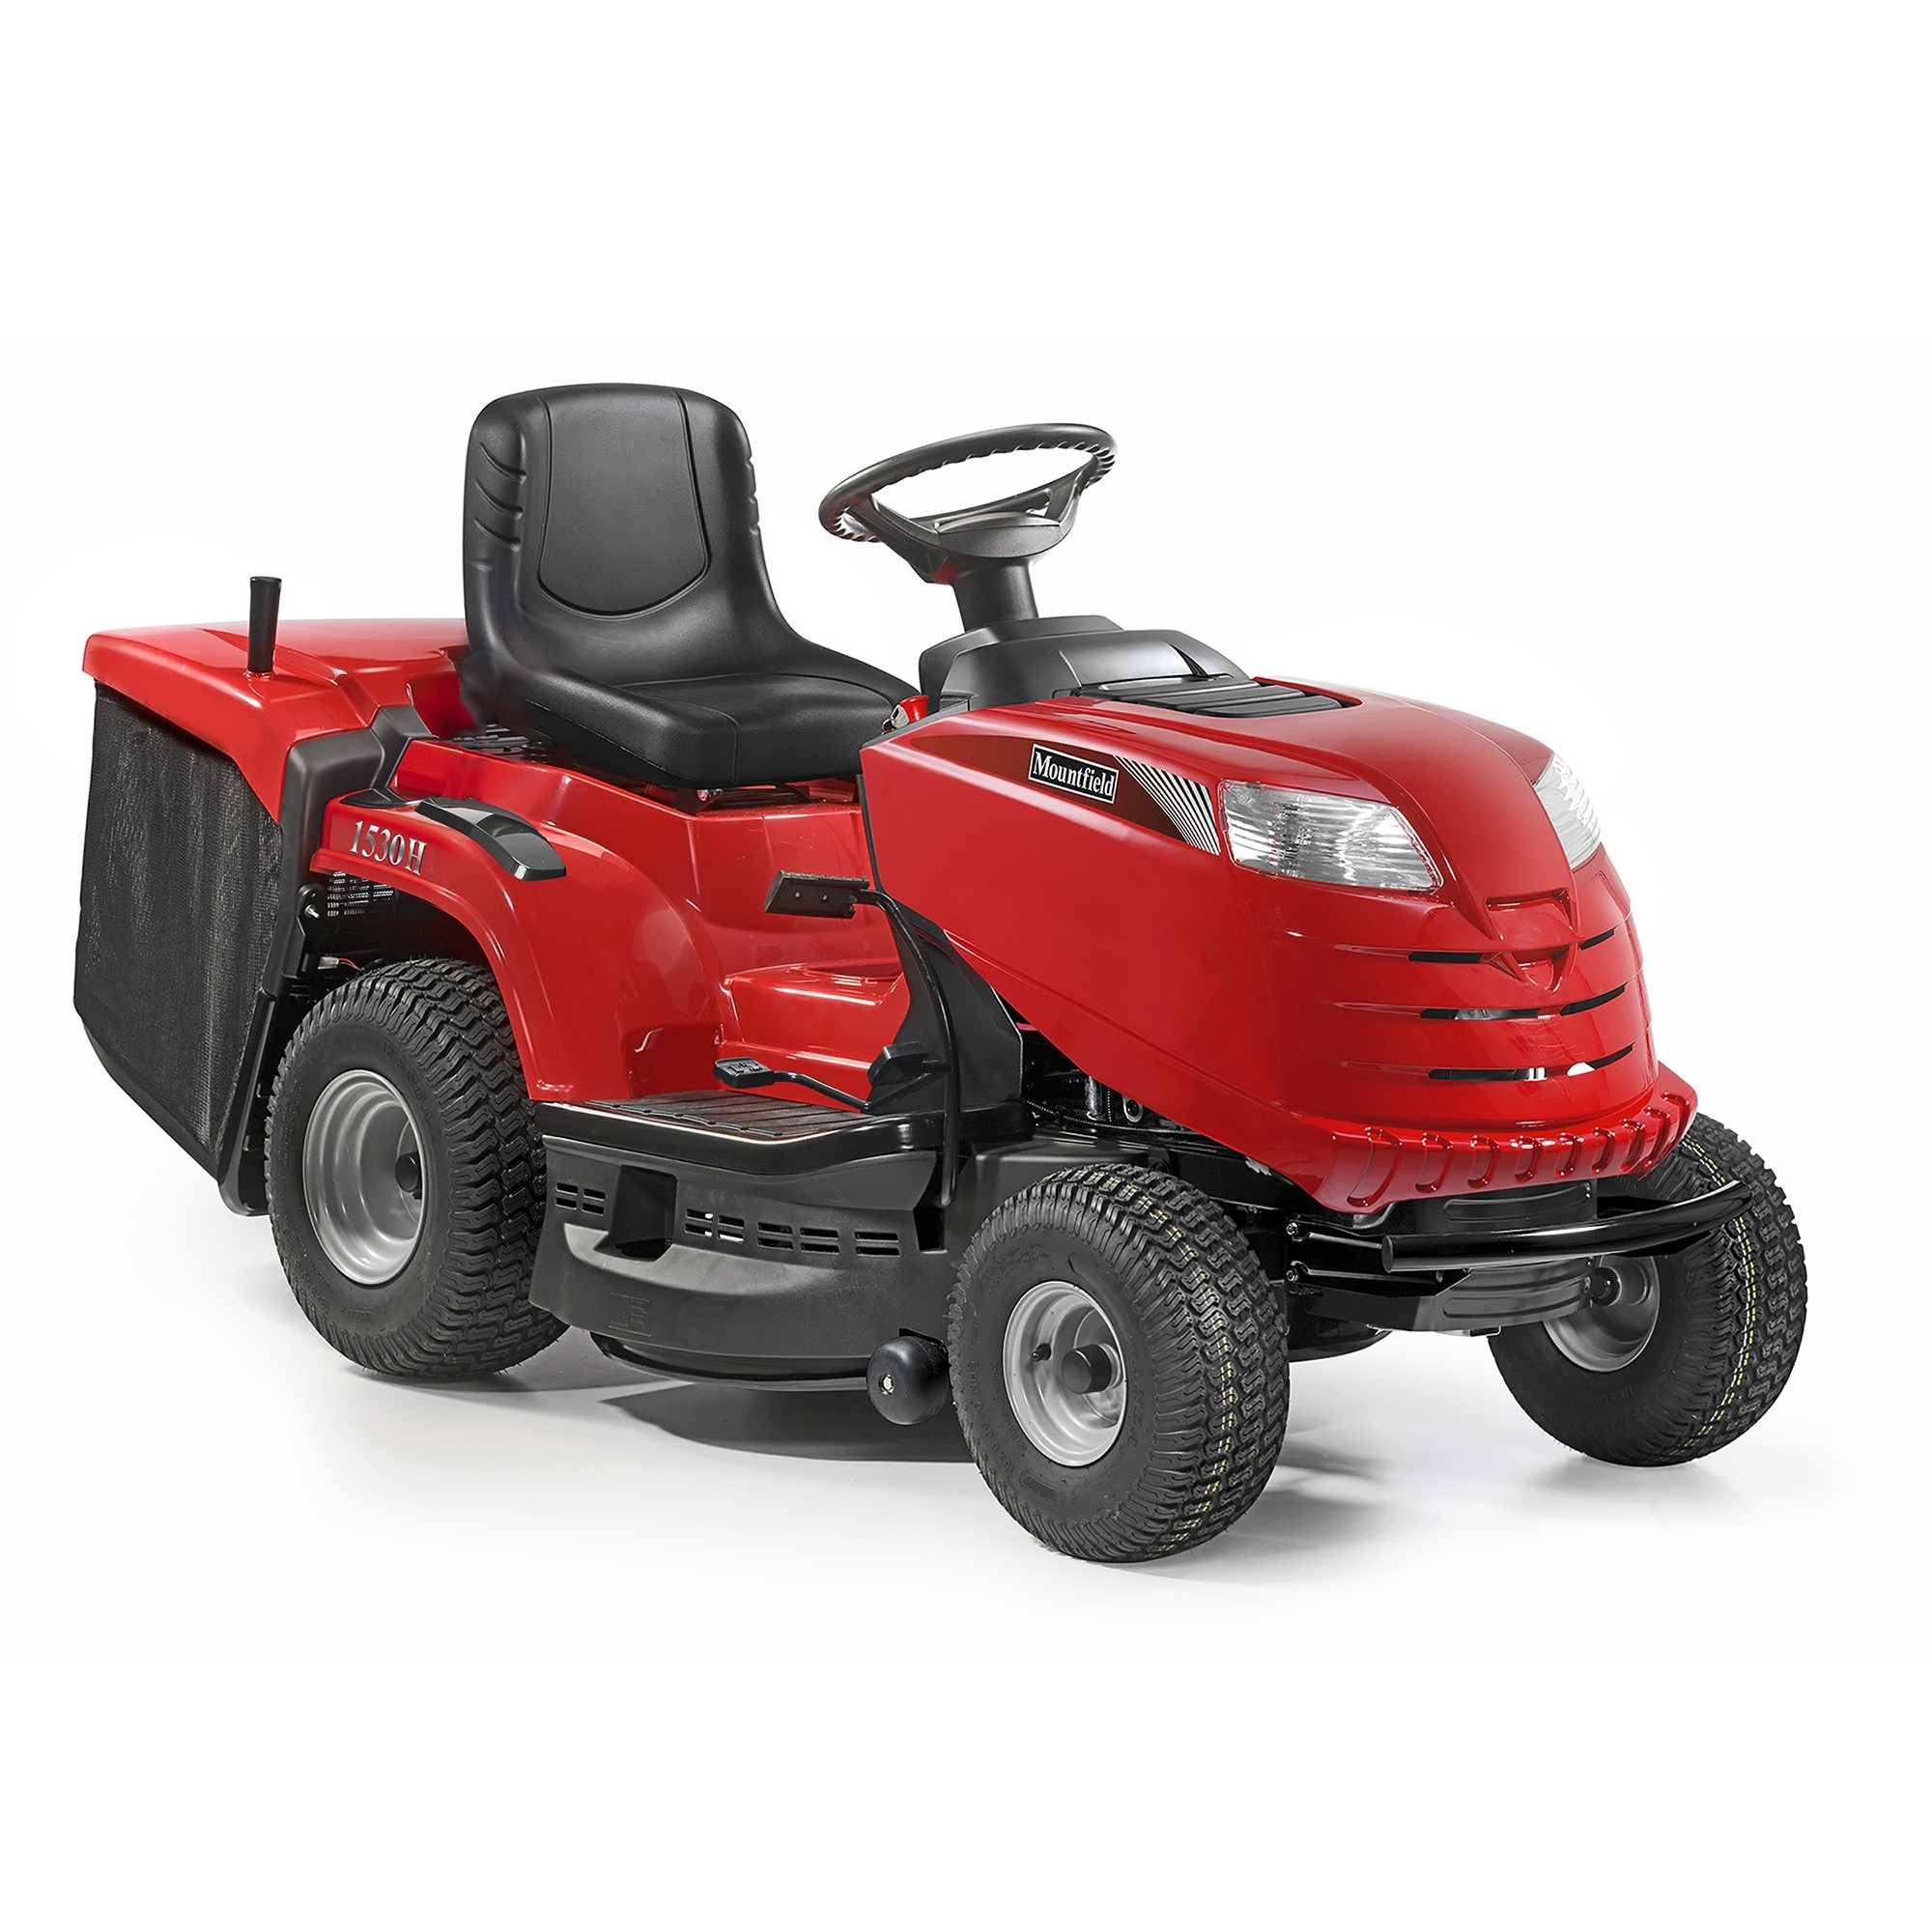 1530h lawn tractor